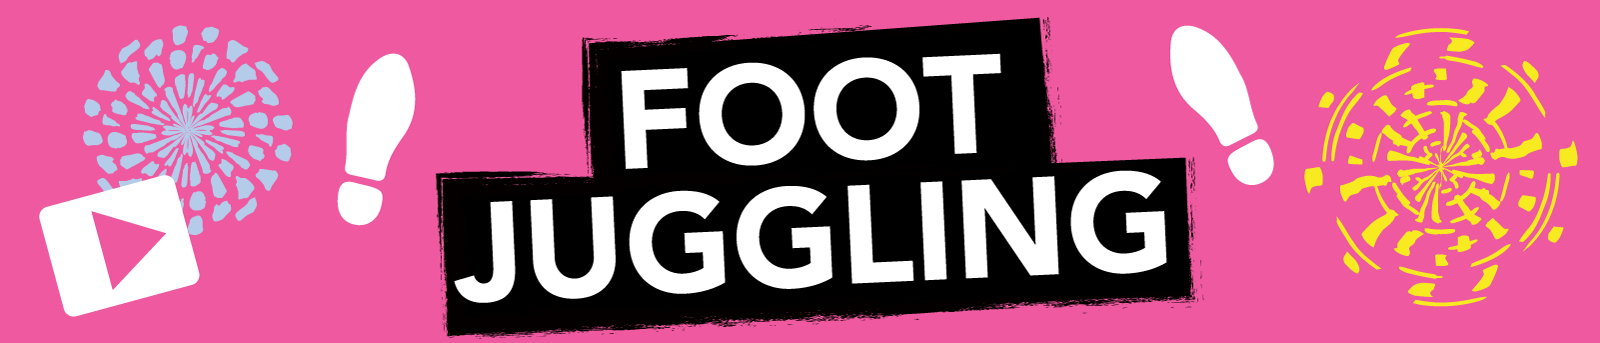 Foot Juggling